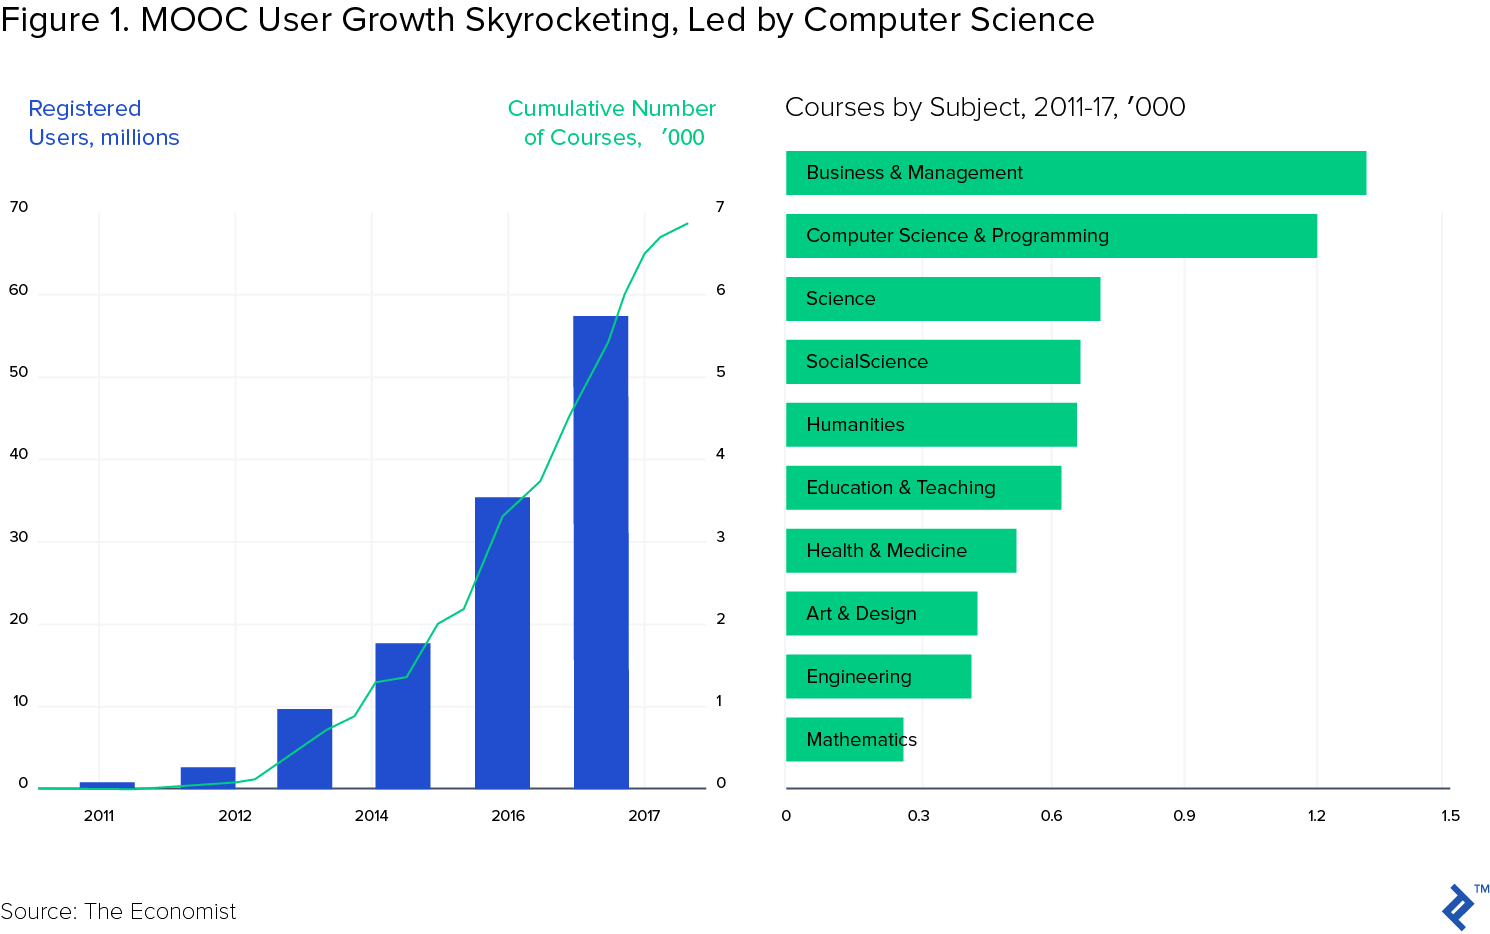 Figure 1: MOOC user growth skyrocketing, led by computer science